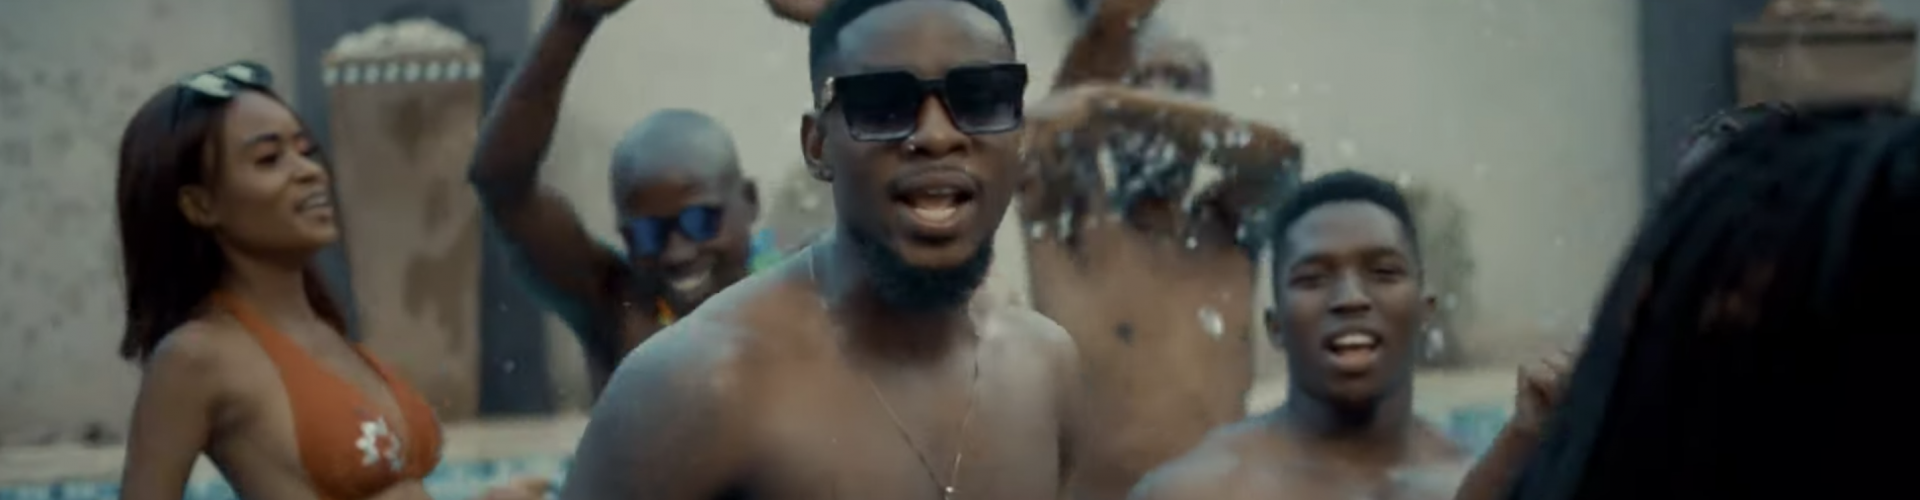 Chef Gustos – TOLA IPATO ft. Bangu & Cibil Nyte (Official Music Video)